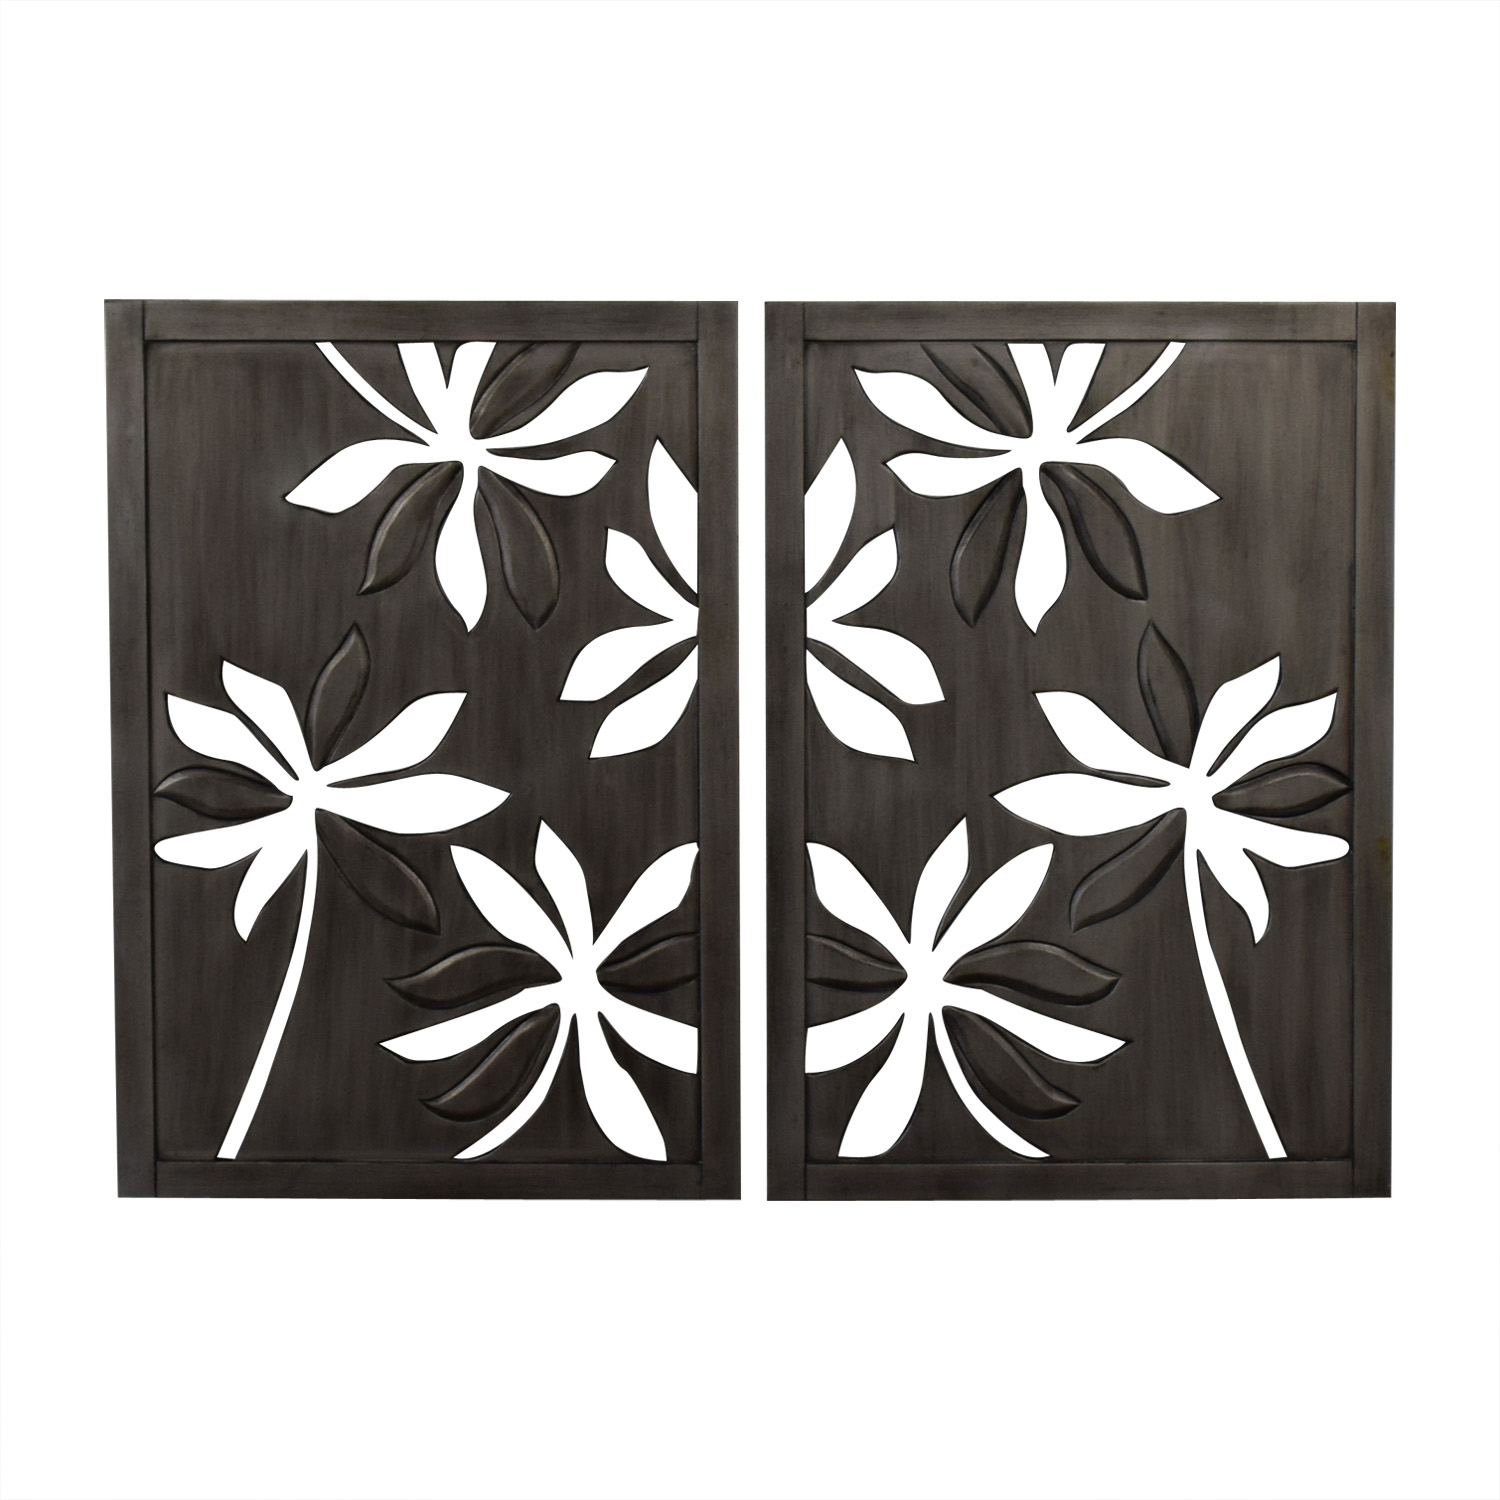 Pier 1 Pier 1 Open Carved Floral Flower Wall Art dimensions